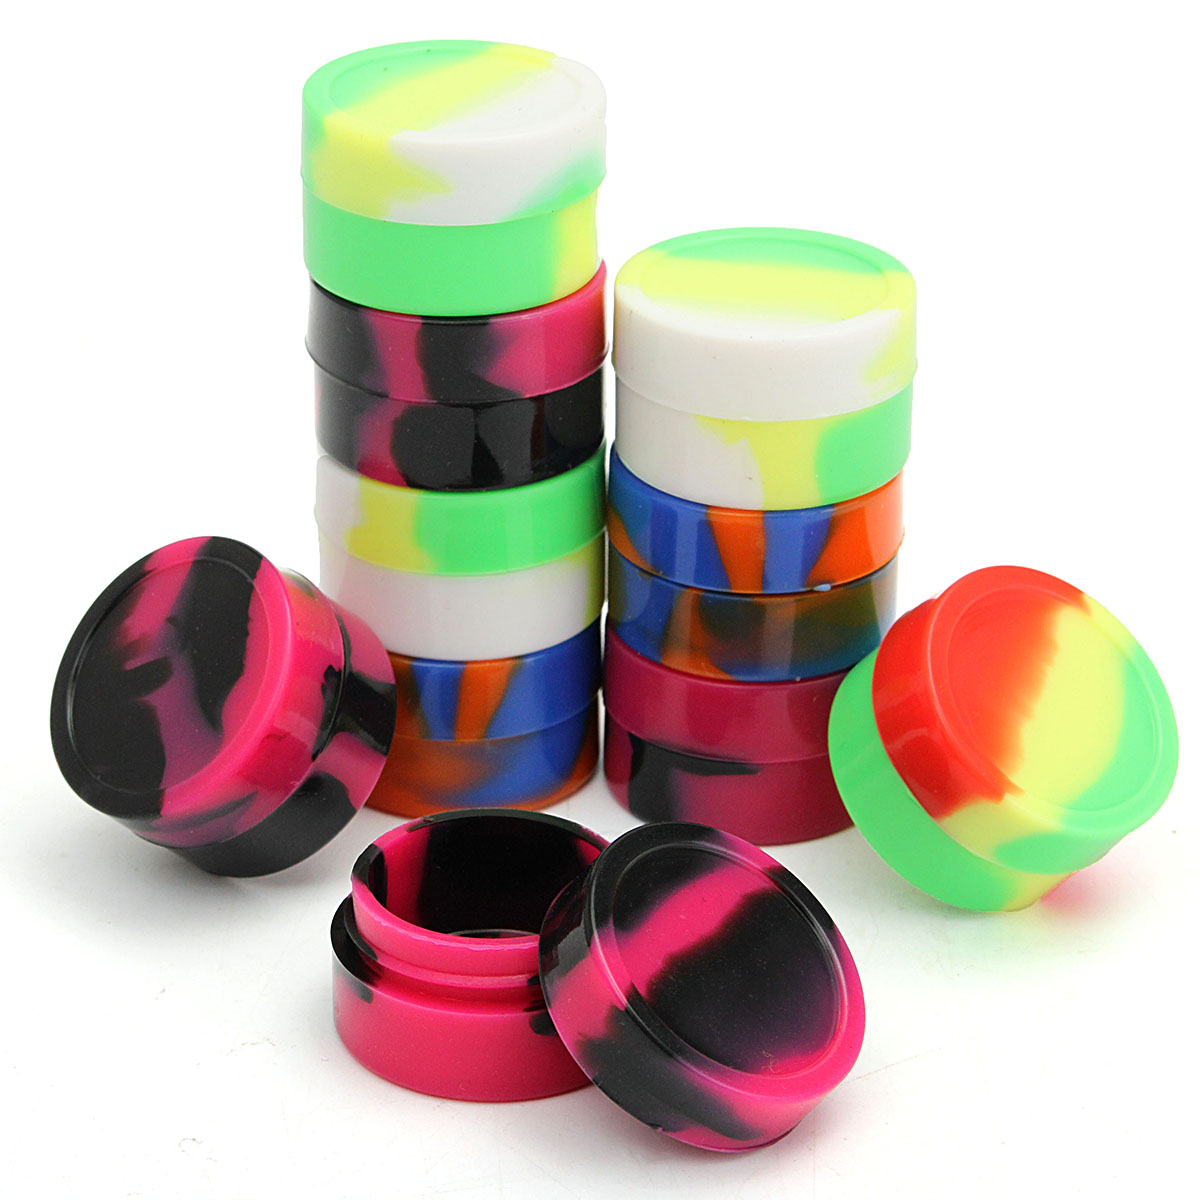 10pcs/Lot 5ml Non-stick Silicone Ball Container For Wax Bho Oil Butane Vaporizer Dab Silicon Jars Cream Emulsion Storage Box